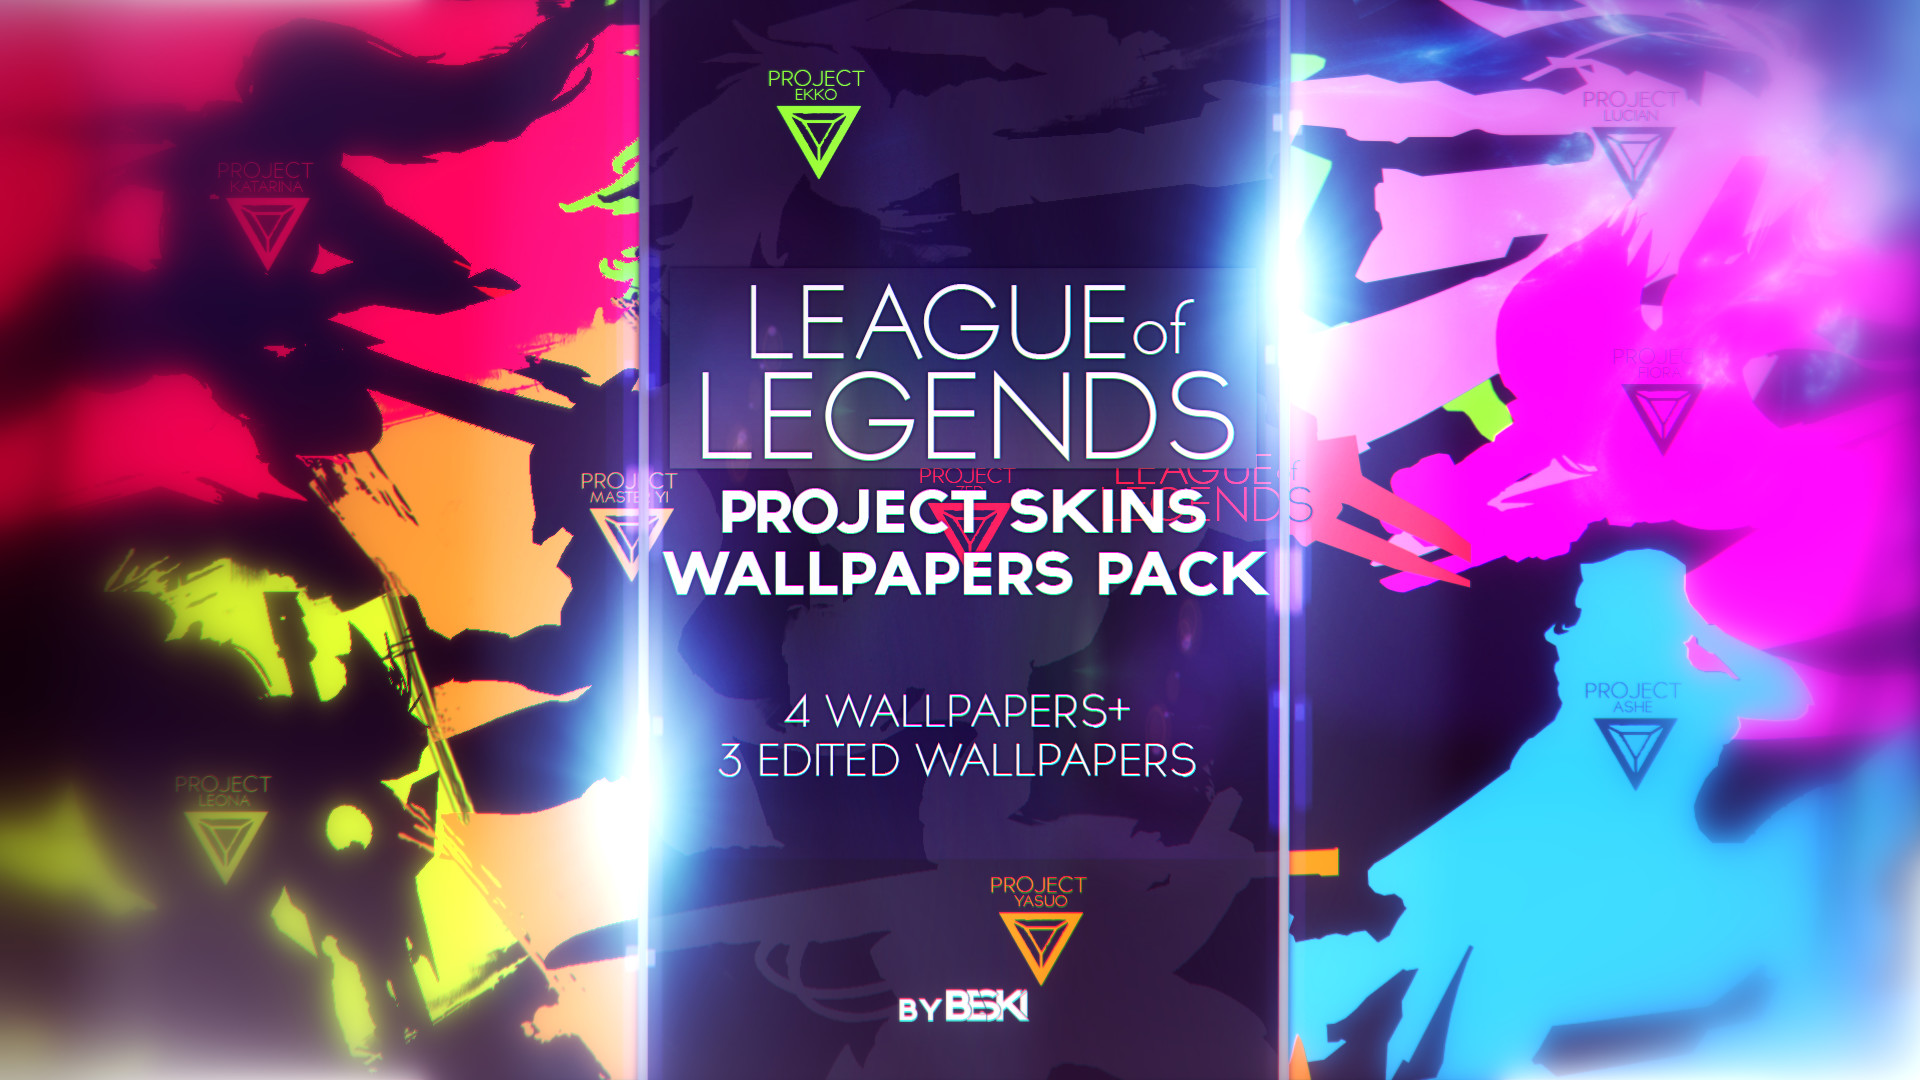 1920x1080 ... League of Legends Project Skins Wallpapers Pack by by Beszky